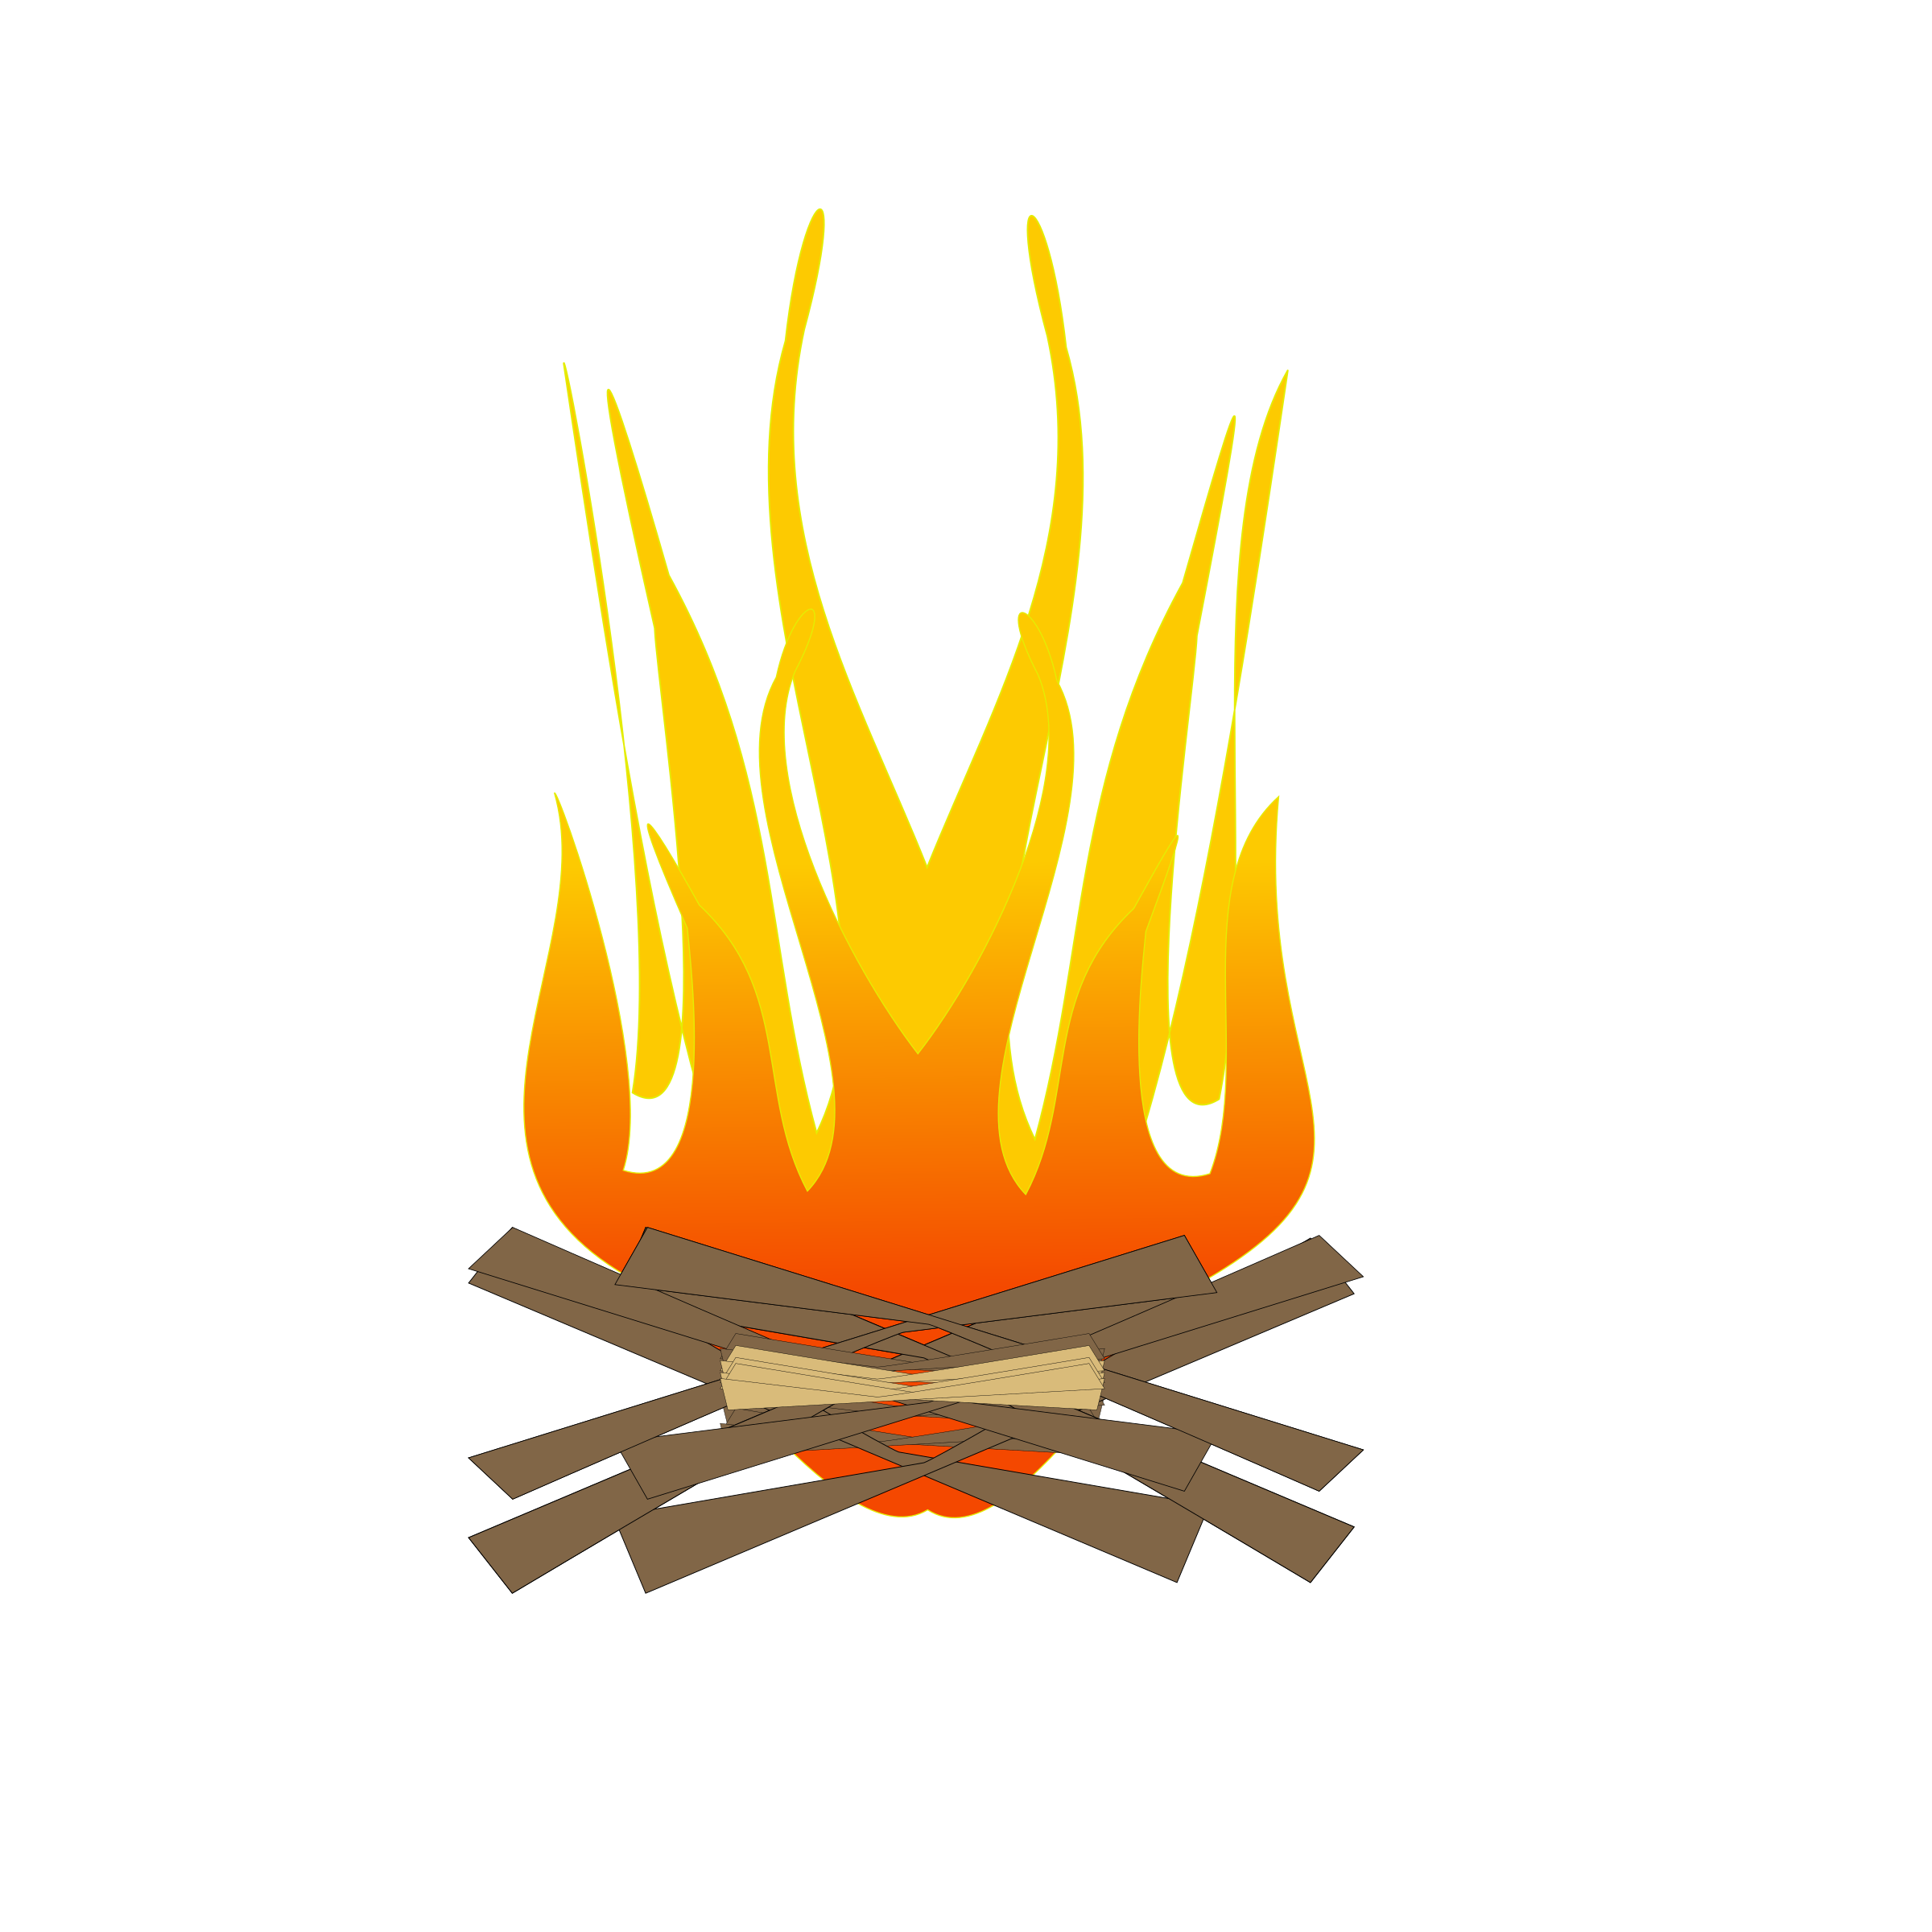 svg royalty free library Camp fire log free. Bonfire clipart fogata.